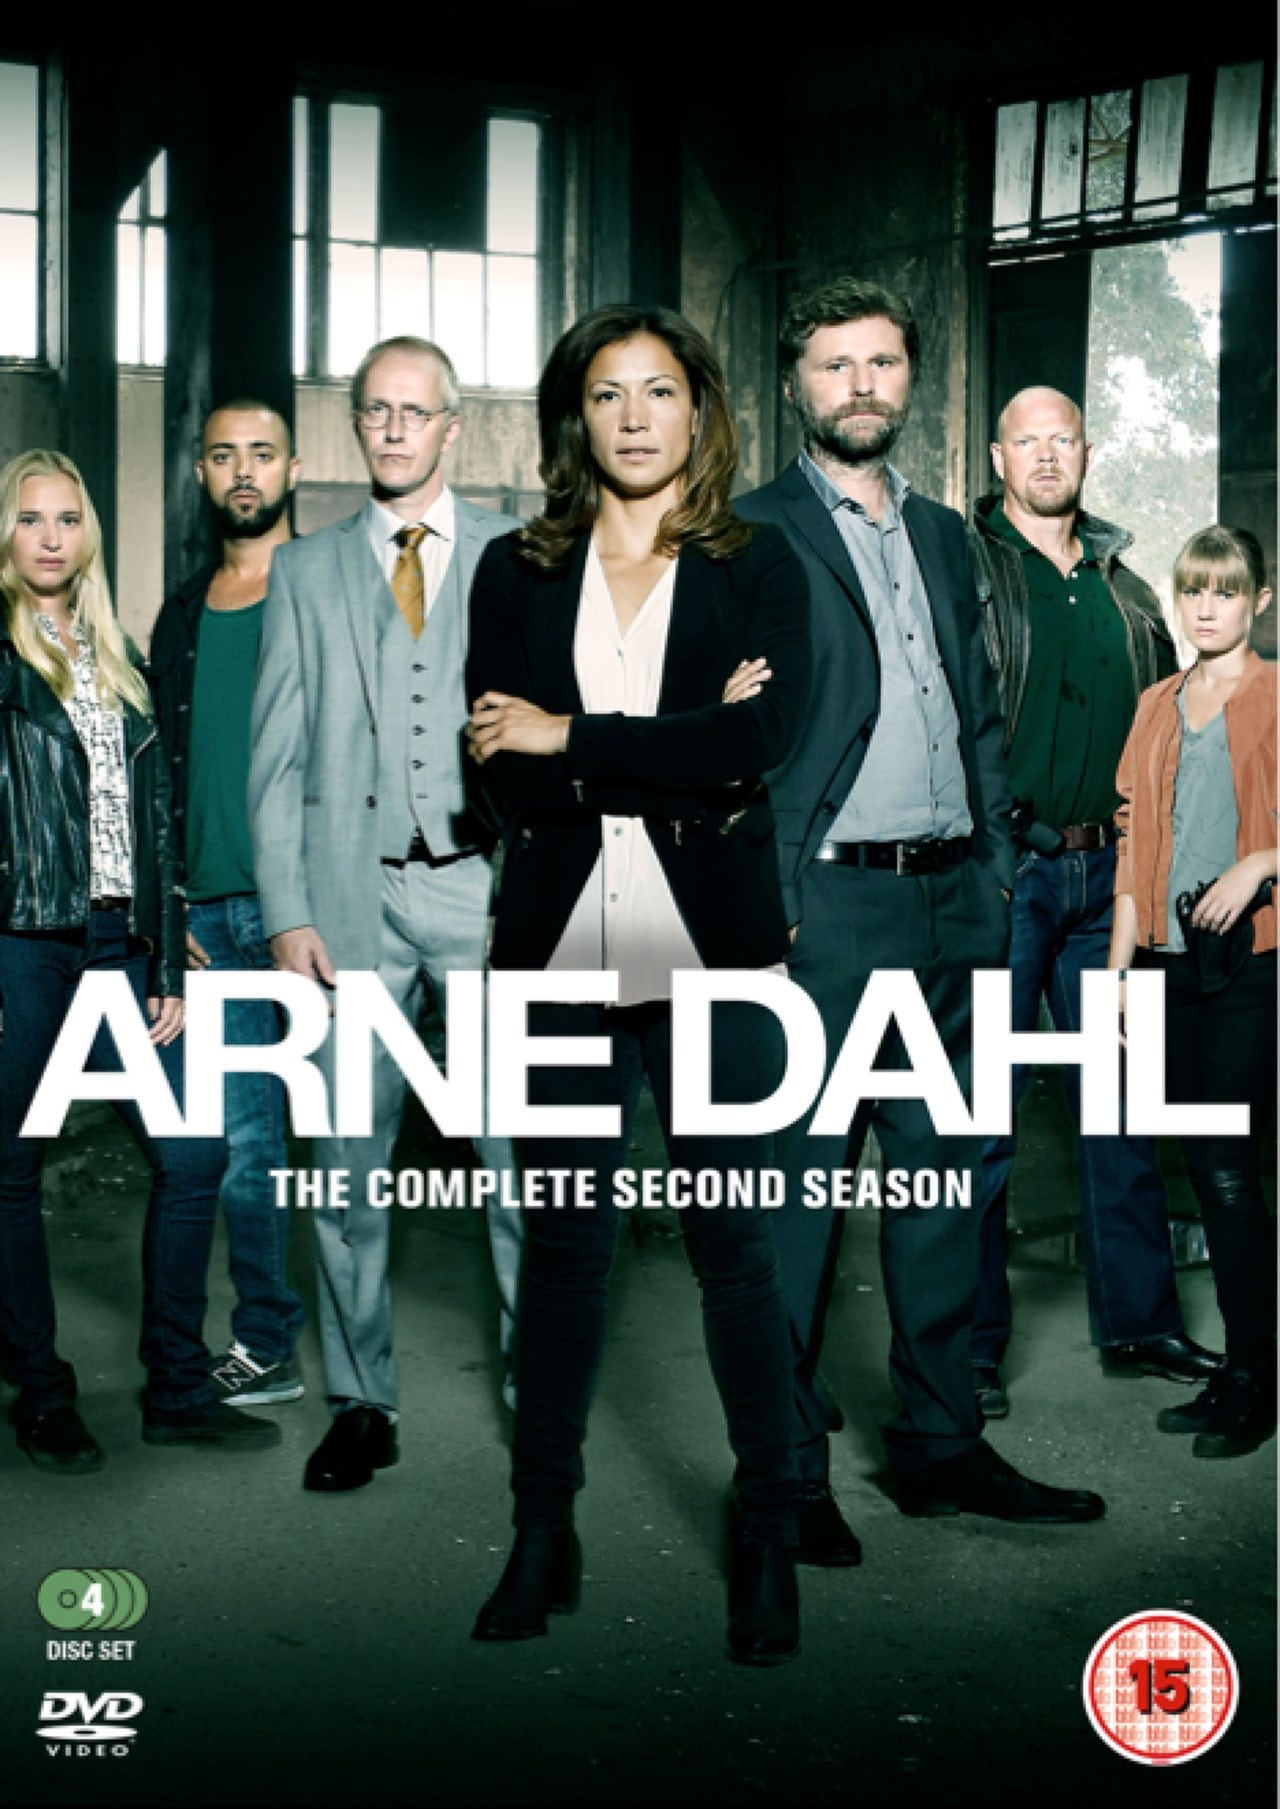 Arne Dahl: The Complete Second Season - 1